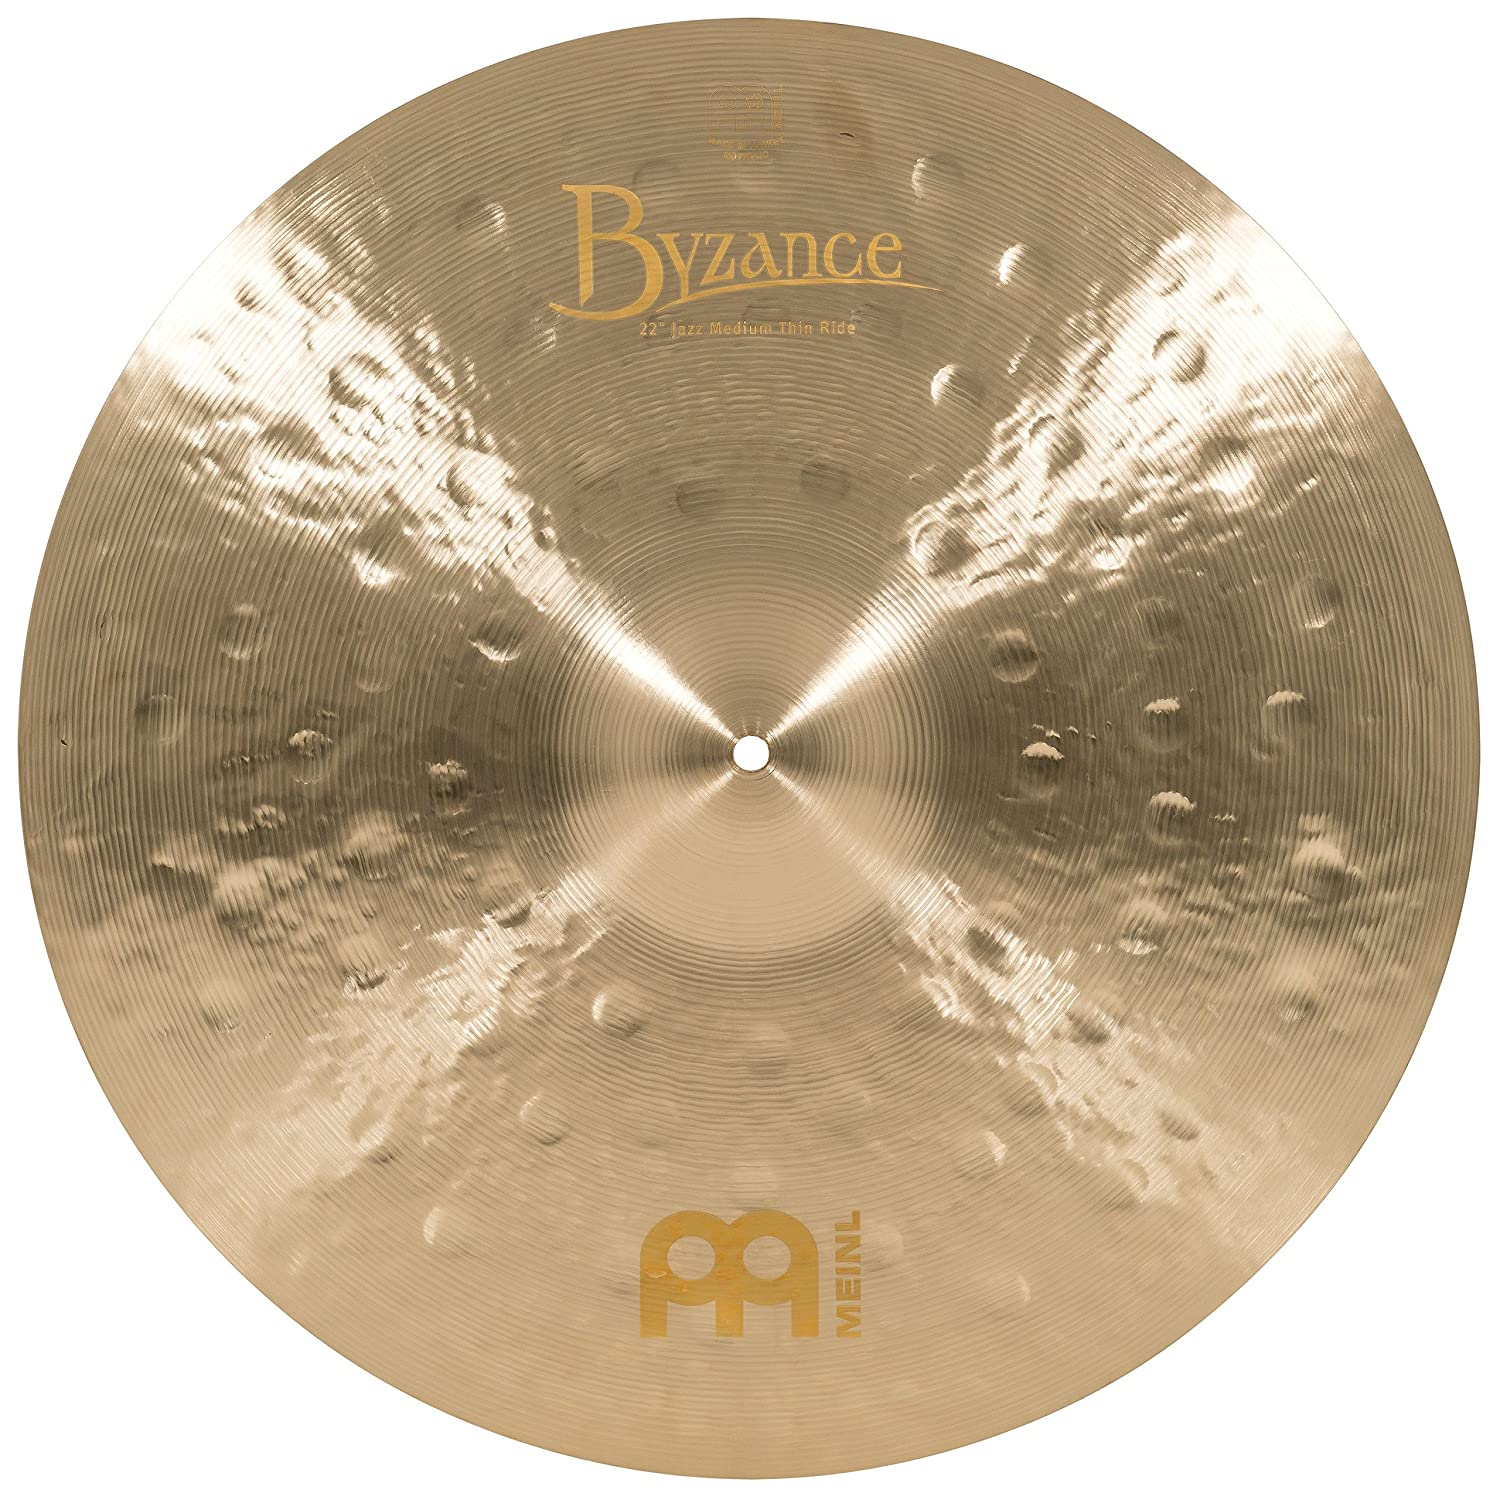 Meinl Cymbals B22JMTR Byzance 22-Inch Jazz Medium Thin Ride Cymbal (VIDEO) Meinl USA L.C.